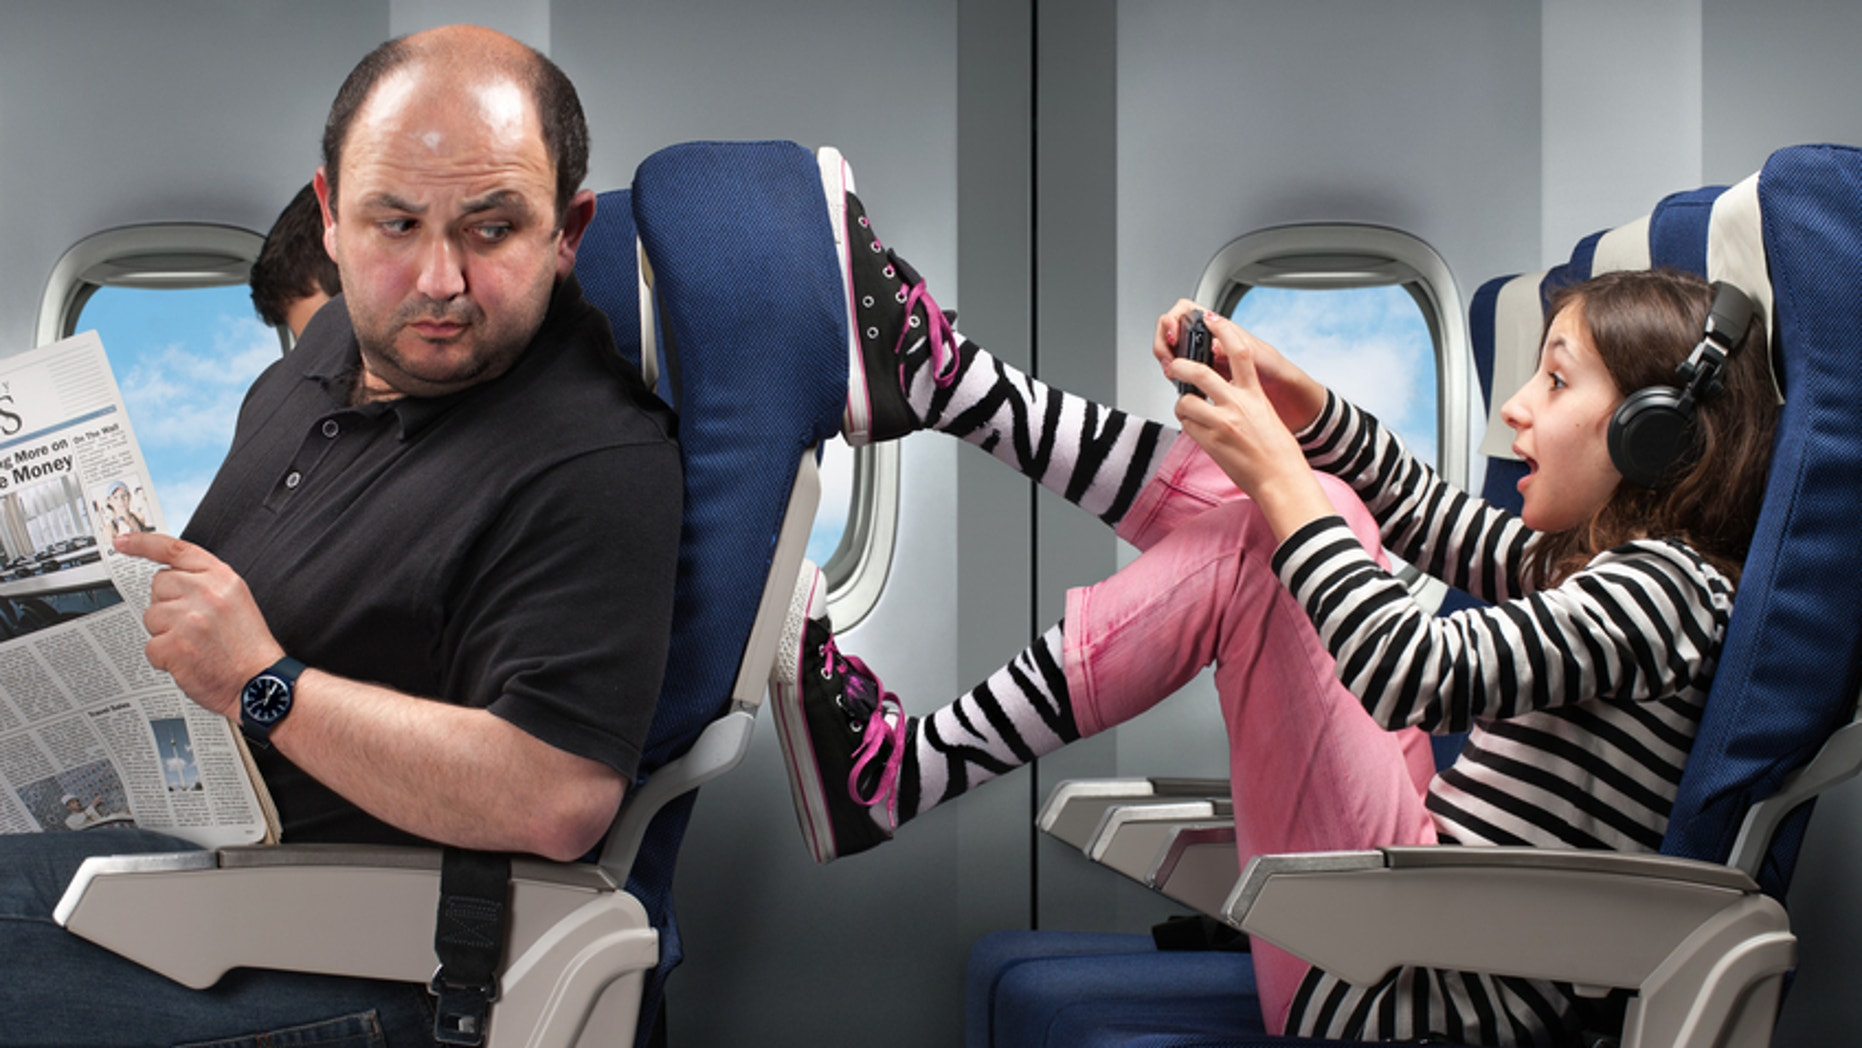 Airline passenger behavior is declining according to a new report.